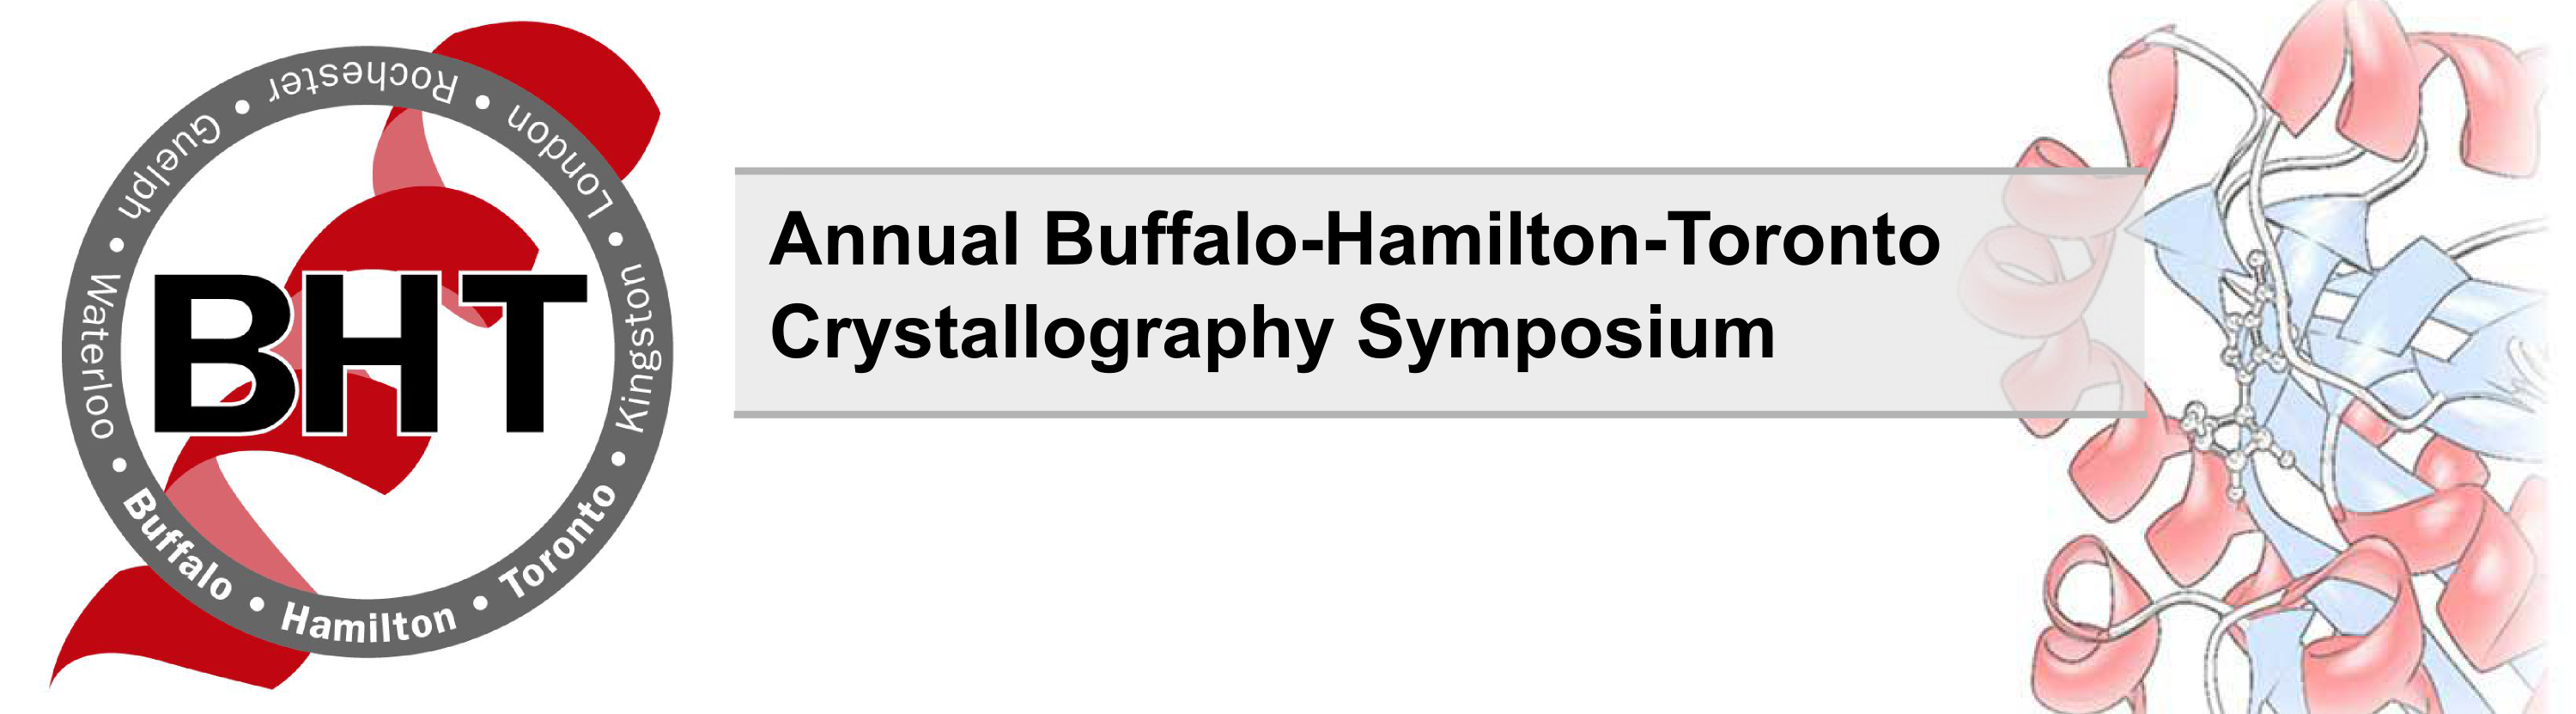 26th Annual Buffalo-Hamilton-Toronto (BHT) Crystallography Symposium